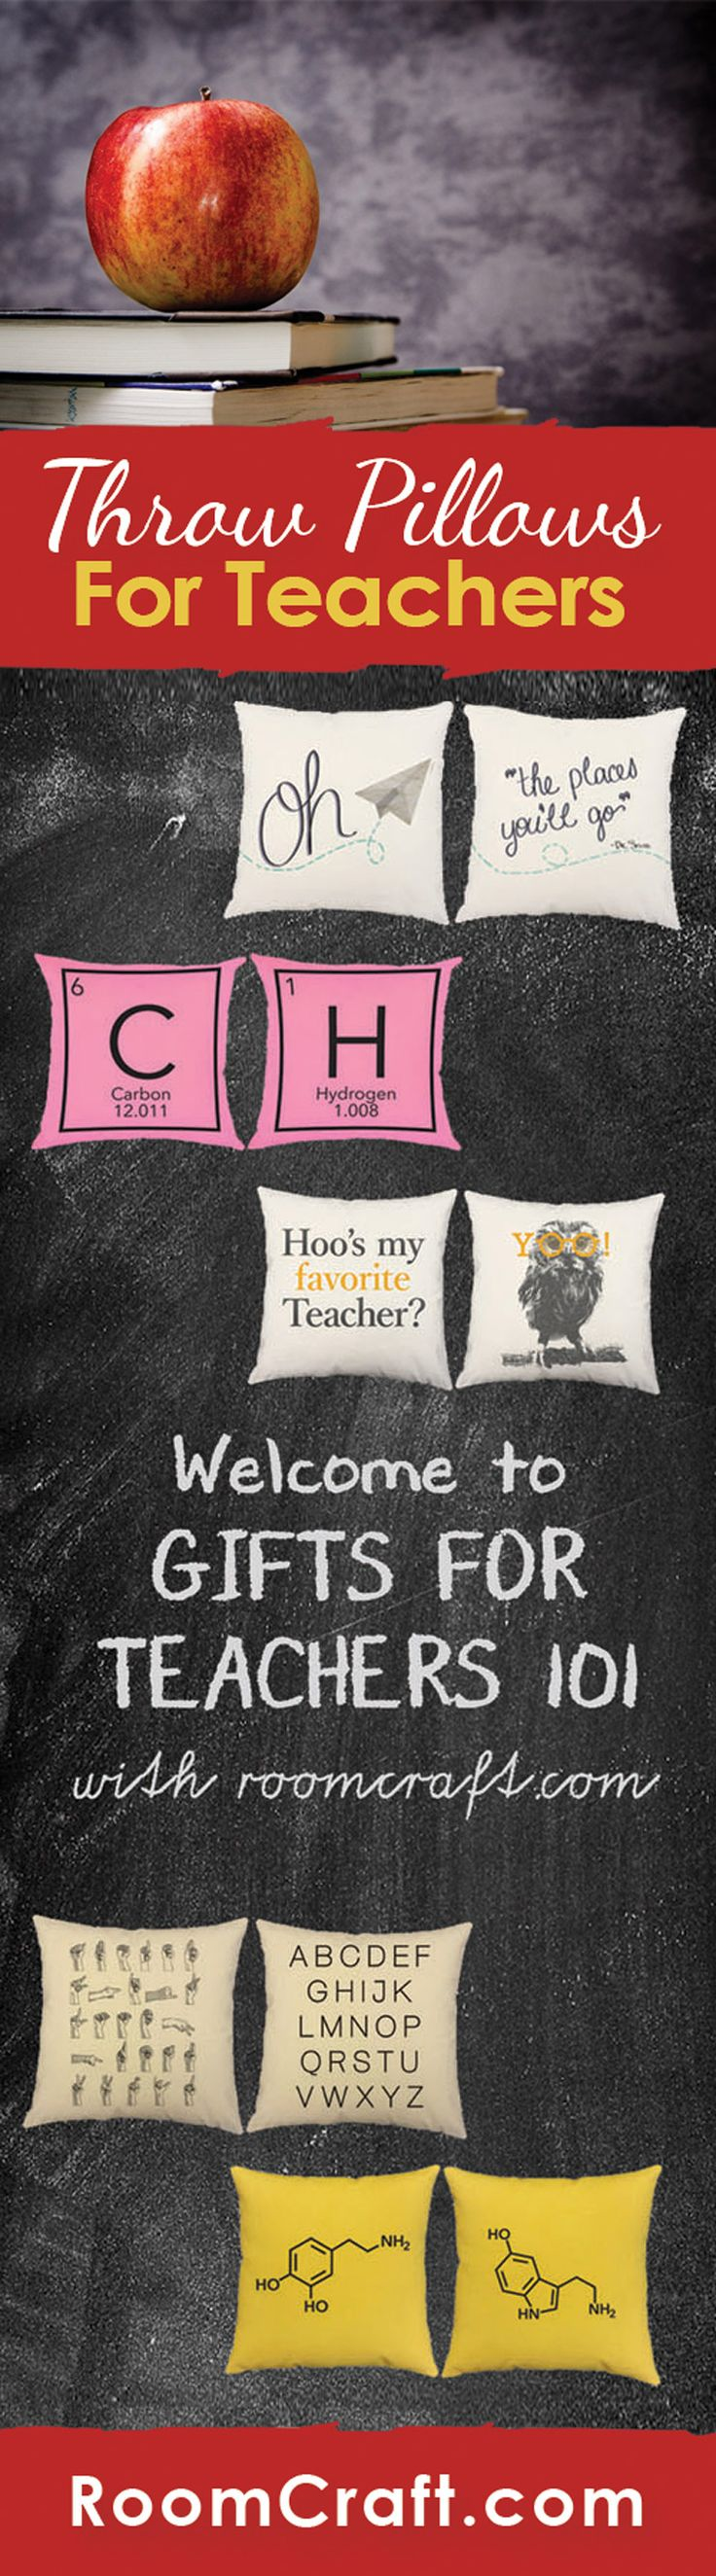 Whether you are decorating your own class or looking for a gift for your teacher or professor, these educational throw pillows are perfect. Each scholastic design is offered in multiple fabrics, sizes, and colors making them perfect for any room in your home, office or classroom. Our quality pillow covers are made to order in the USA and feature 3 wooden buttons on the back for closure. Choose your favorite and create a truly unique pillow set. #roomcraft